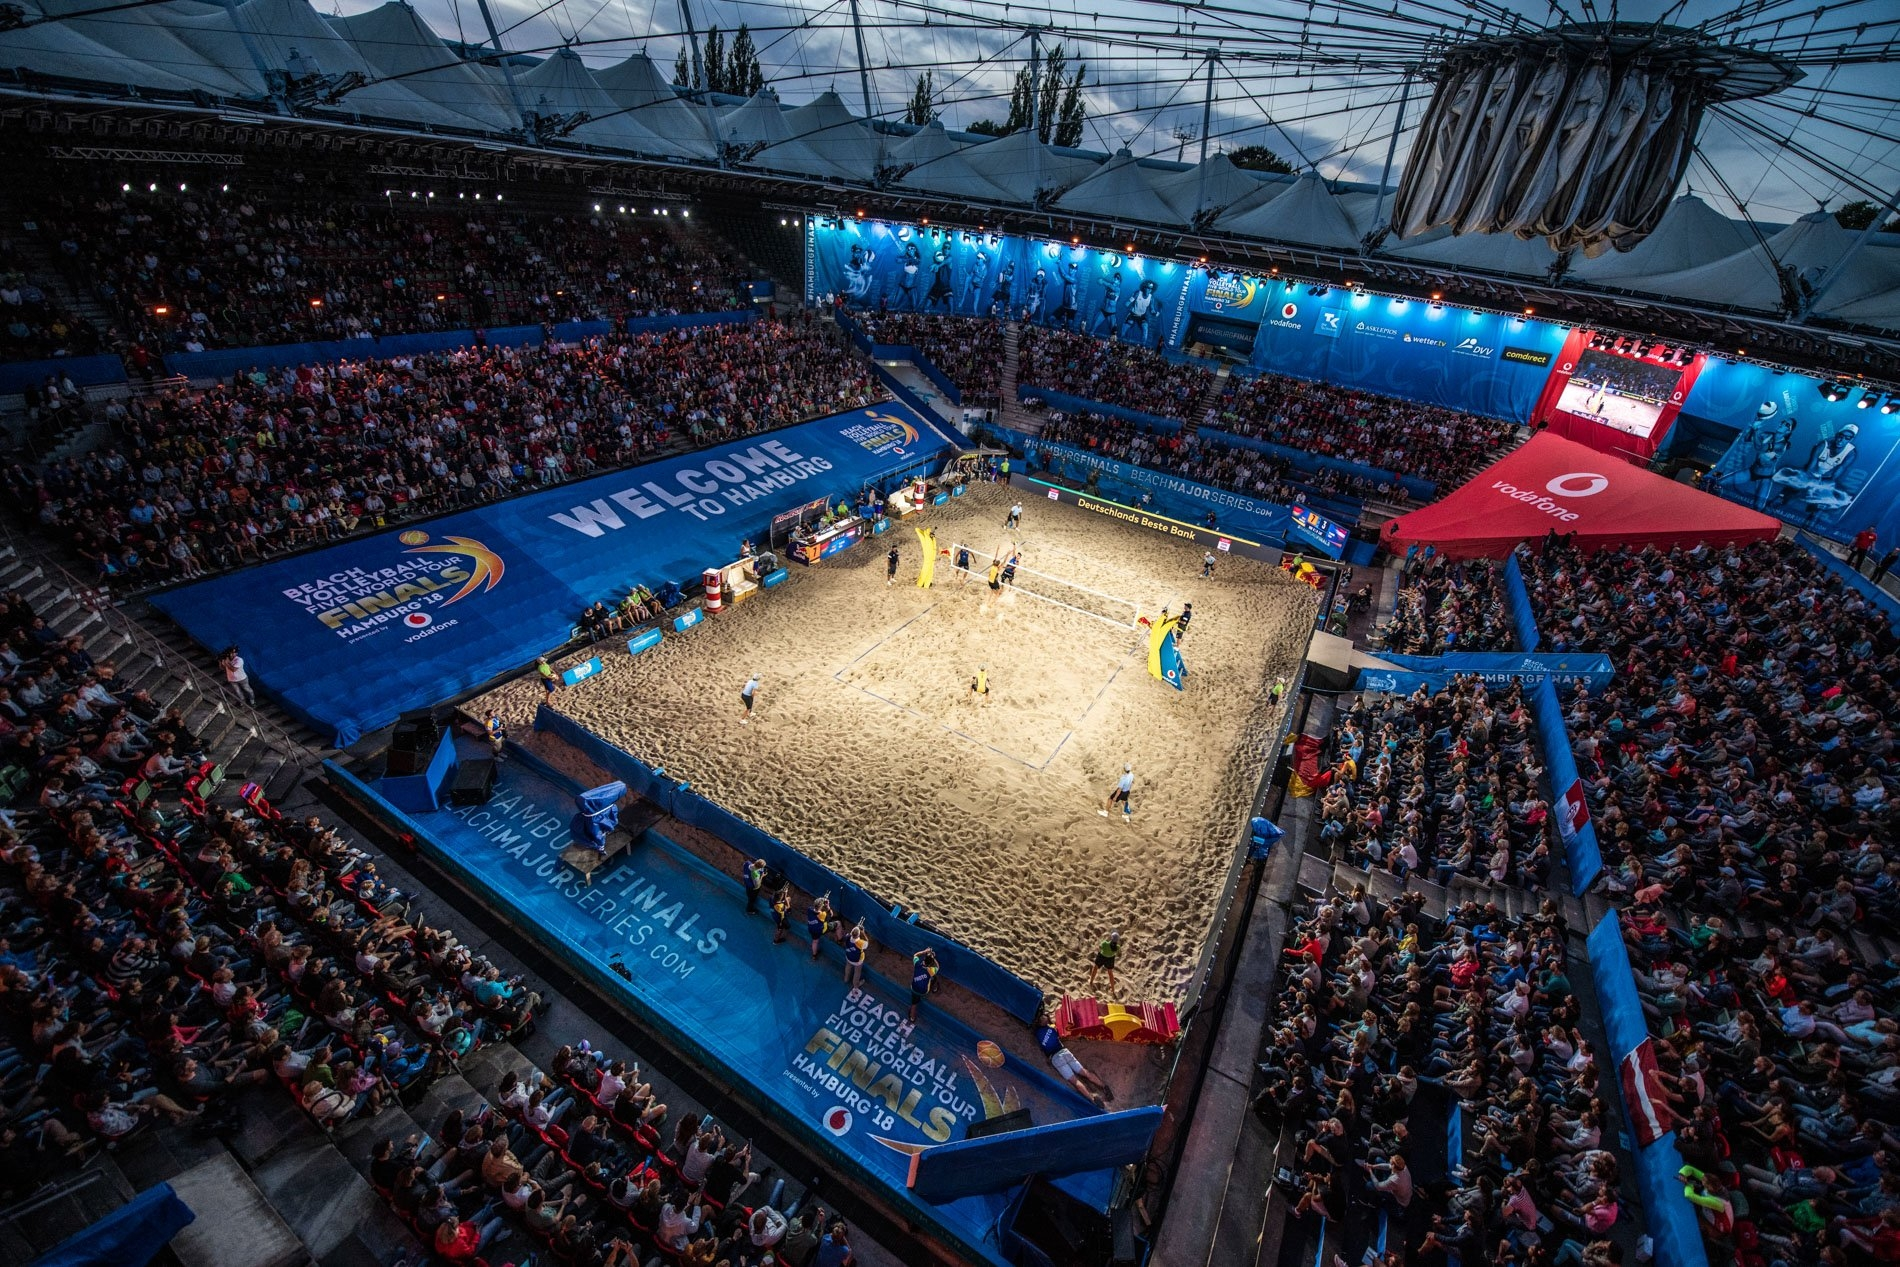 The Rotherbaum will host the beach volleyball elite once again in 2019